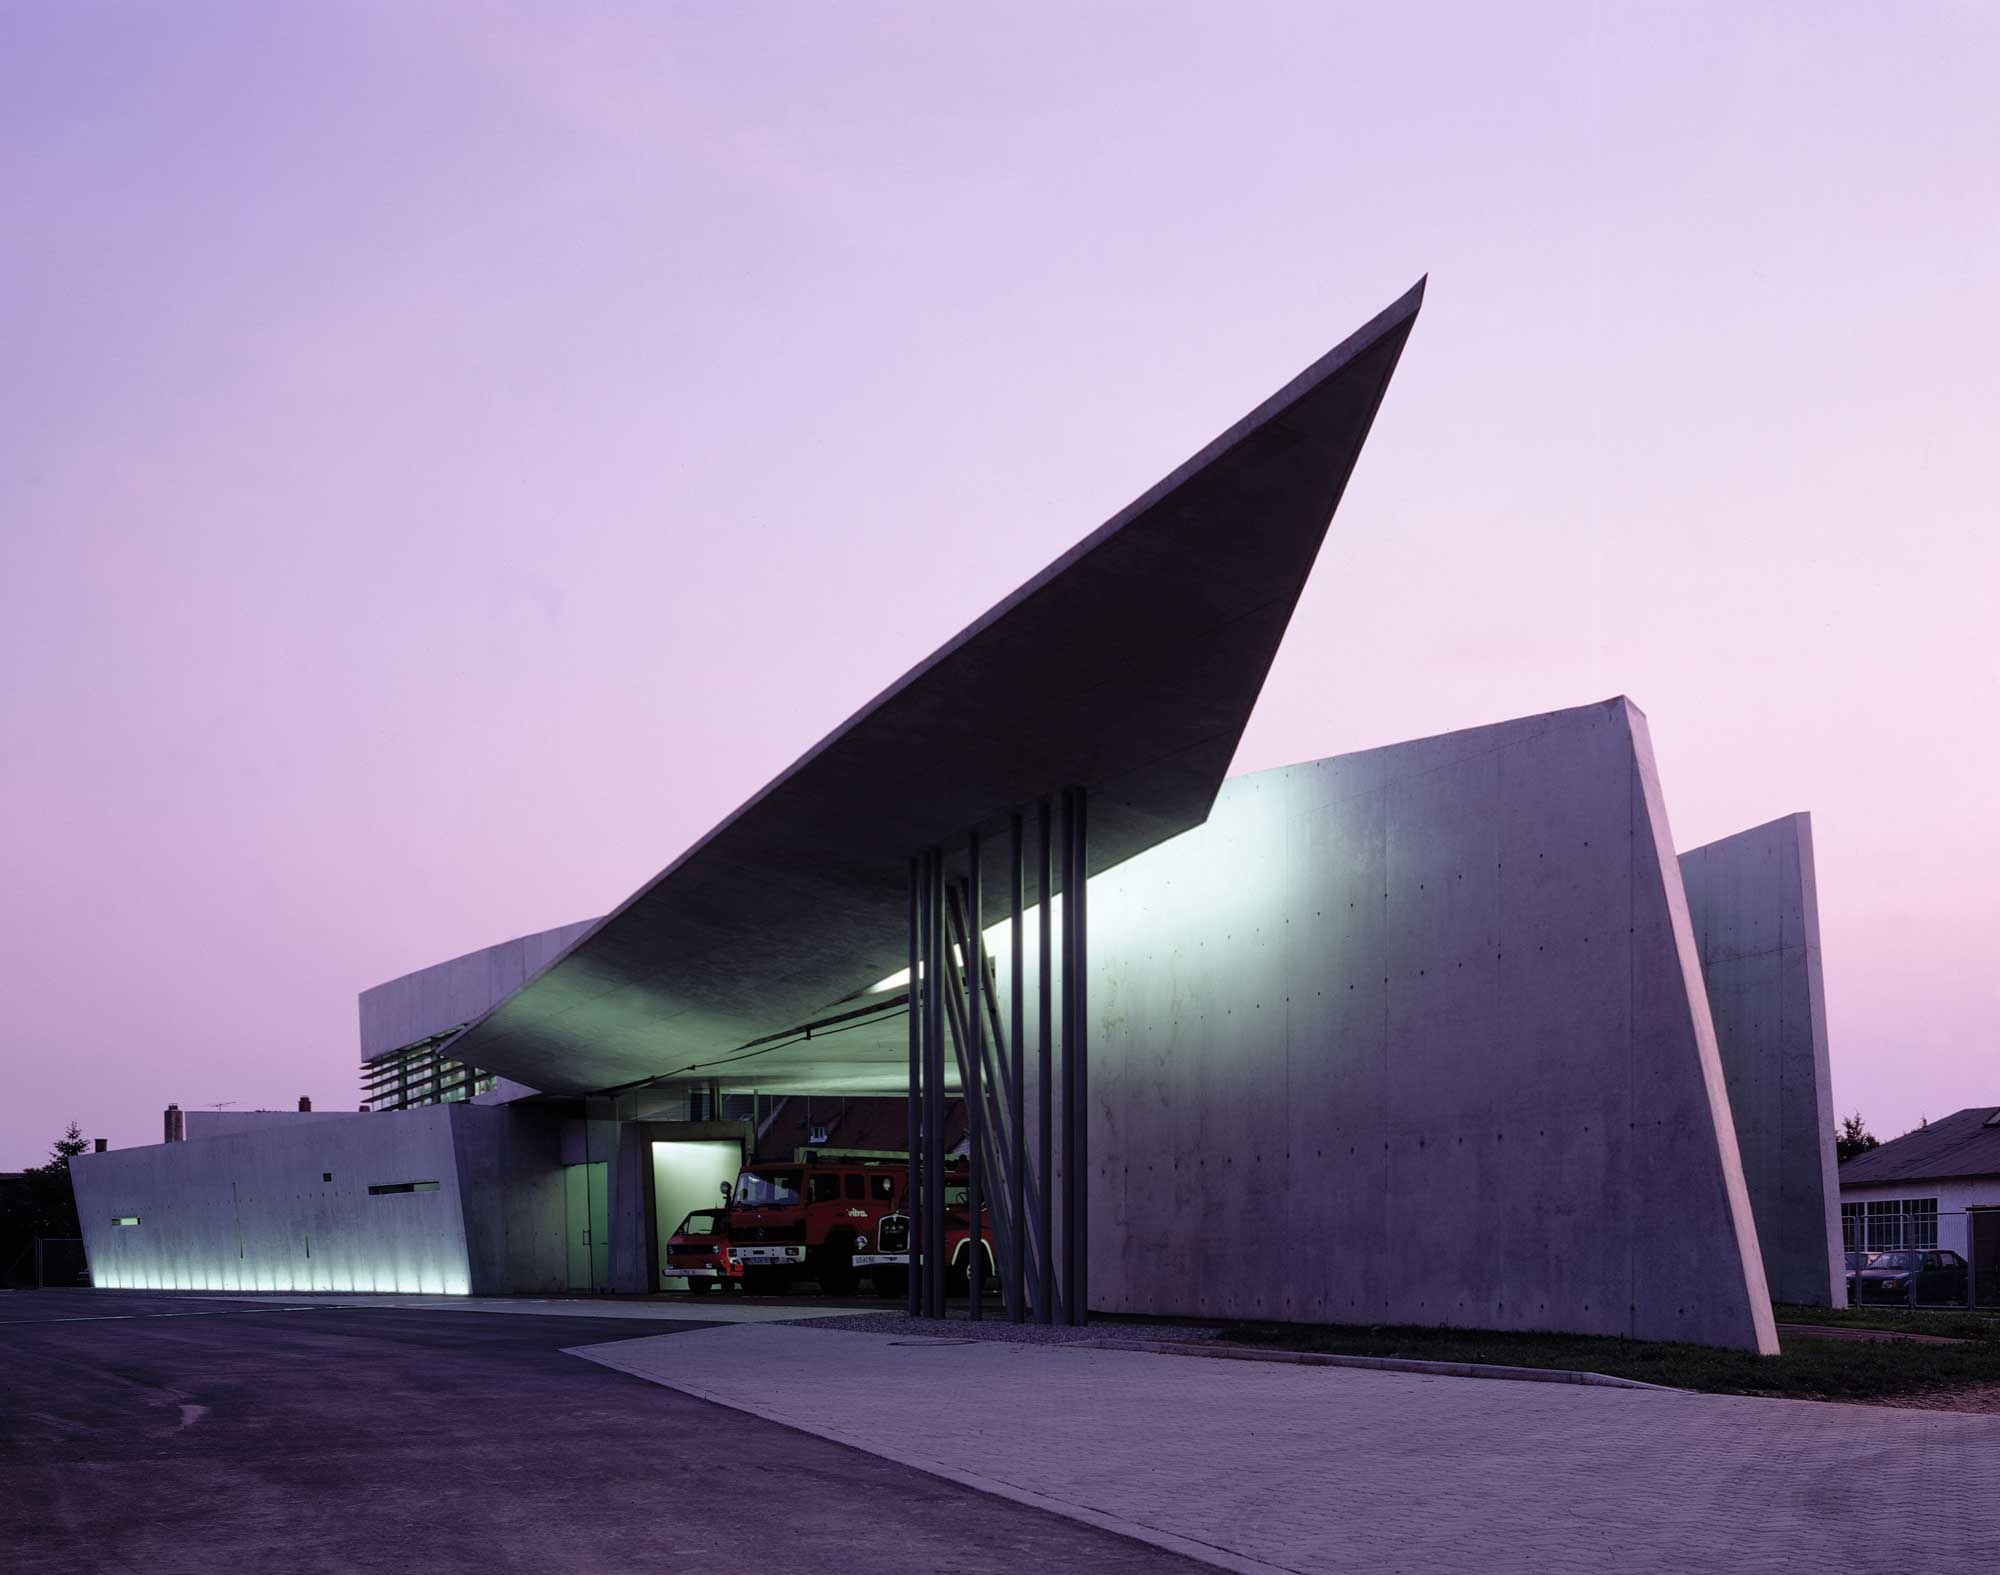 01 Vitra Fire Station Weil am Rhein Germany 2000x1575 c